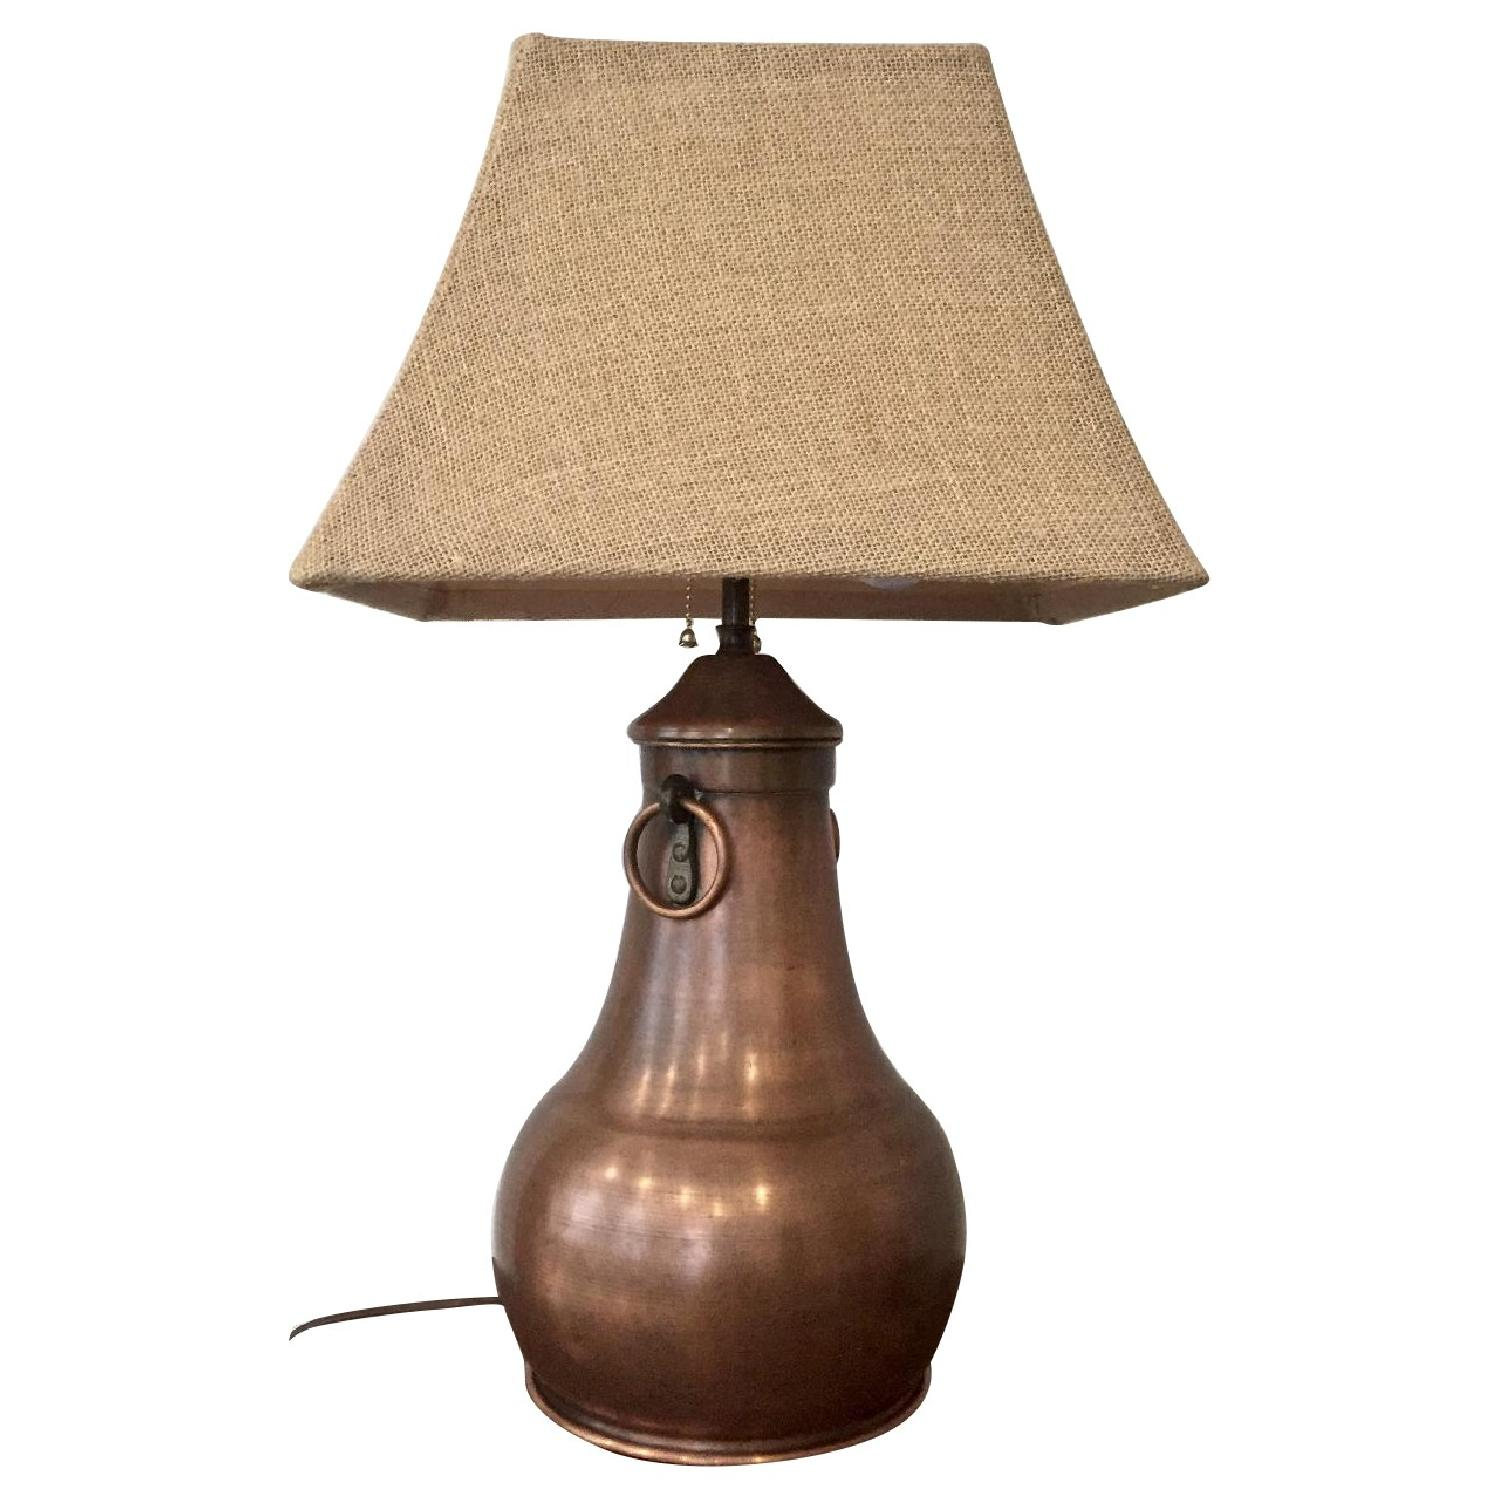 Arrow Arts & Crafts Handcrafted Metal Copper Table Lamp